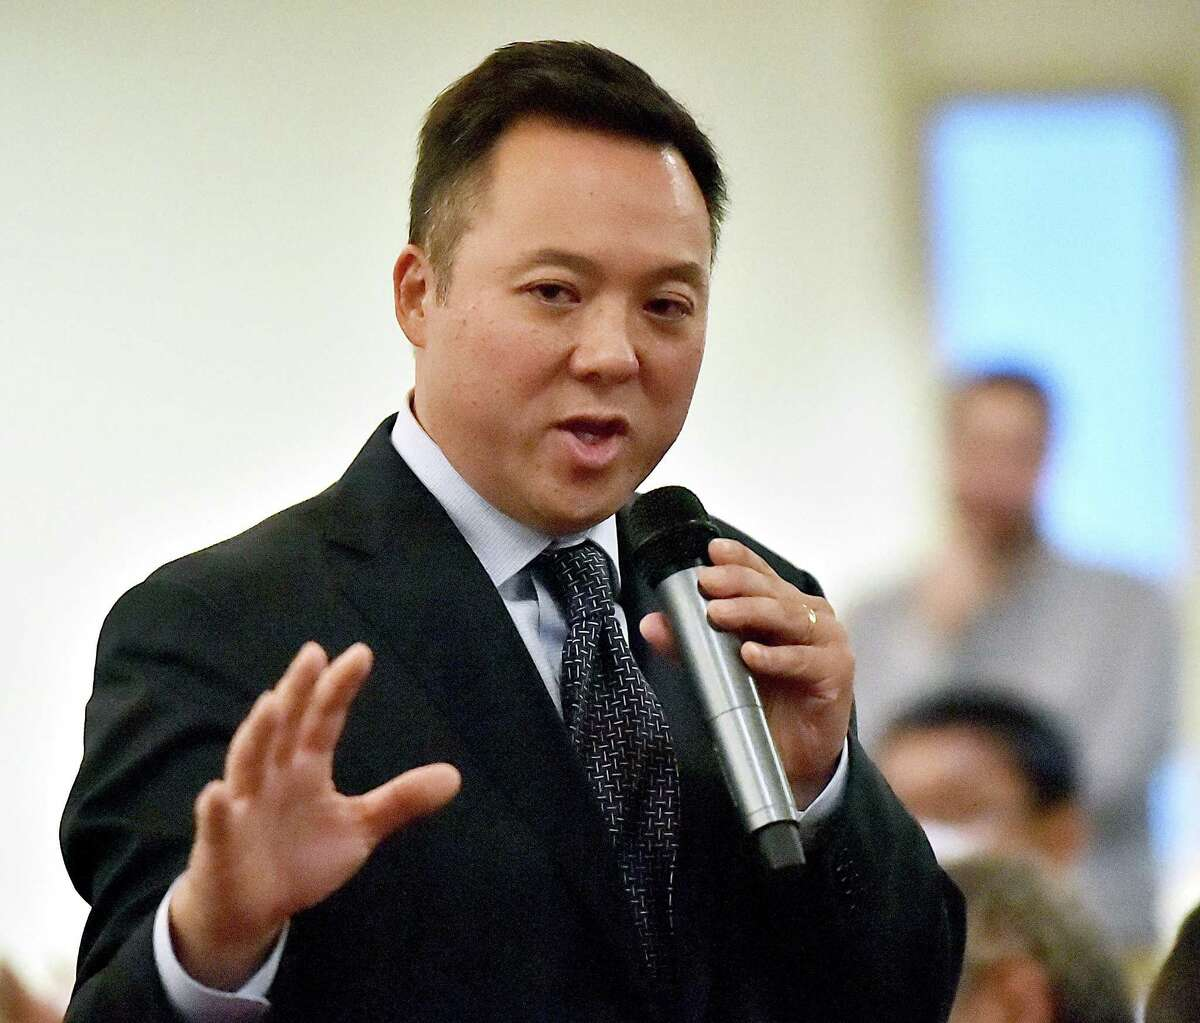 Democratic candidate for Attorney General William Tong, of Stamford goes head to head with Chris Mattei, of Hartford and Paul Doyle of Wethersfield Tuesday, August 7, 2018 at a debate hosted by the New Haven Independent and the CT Law Tribune at the Bethel African Methodist Episcopal Church in New Haven.